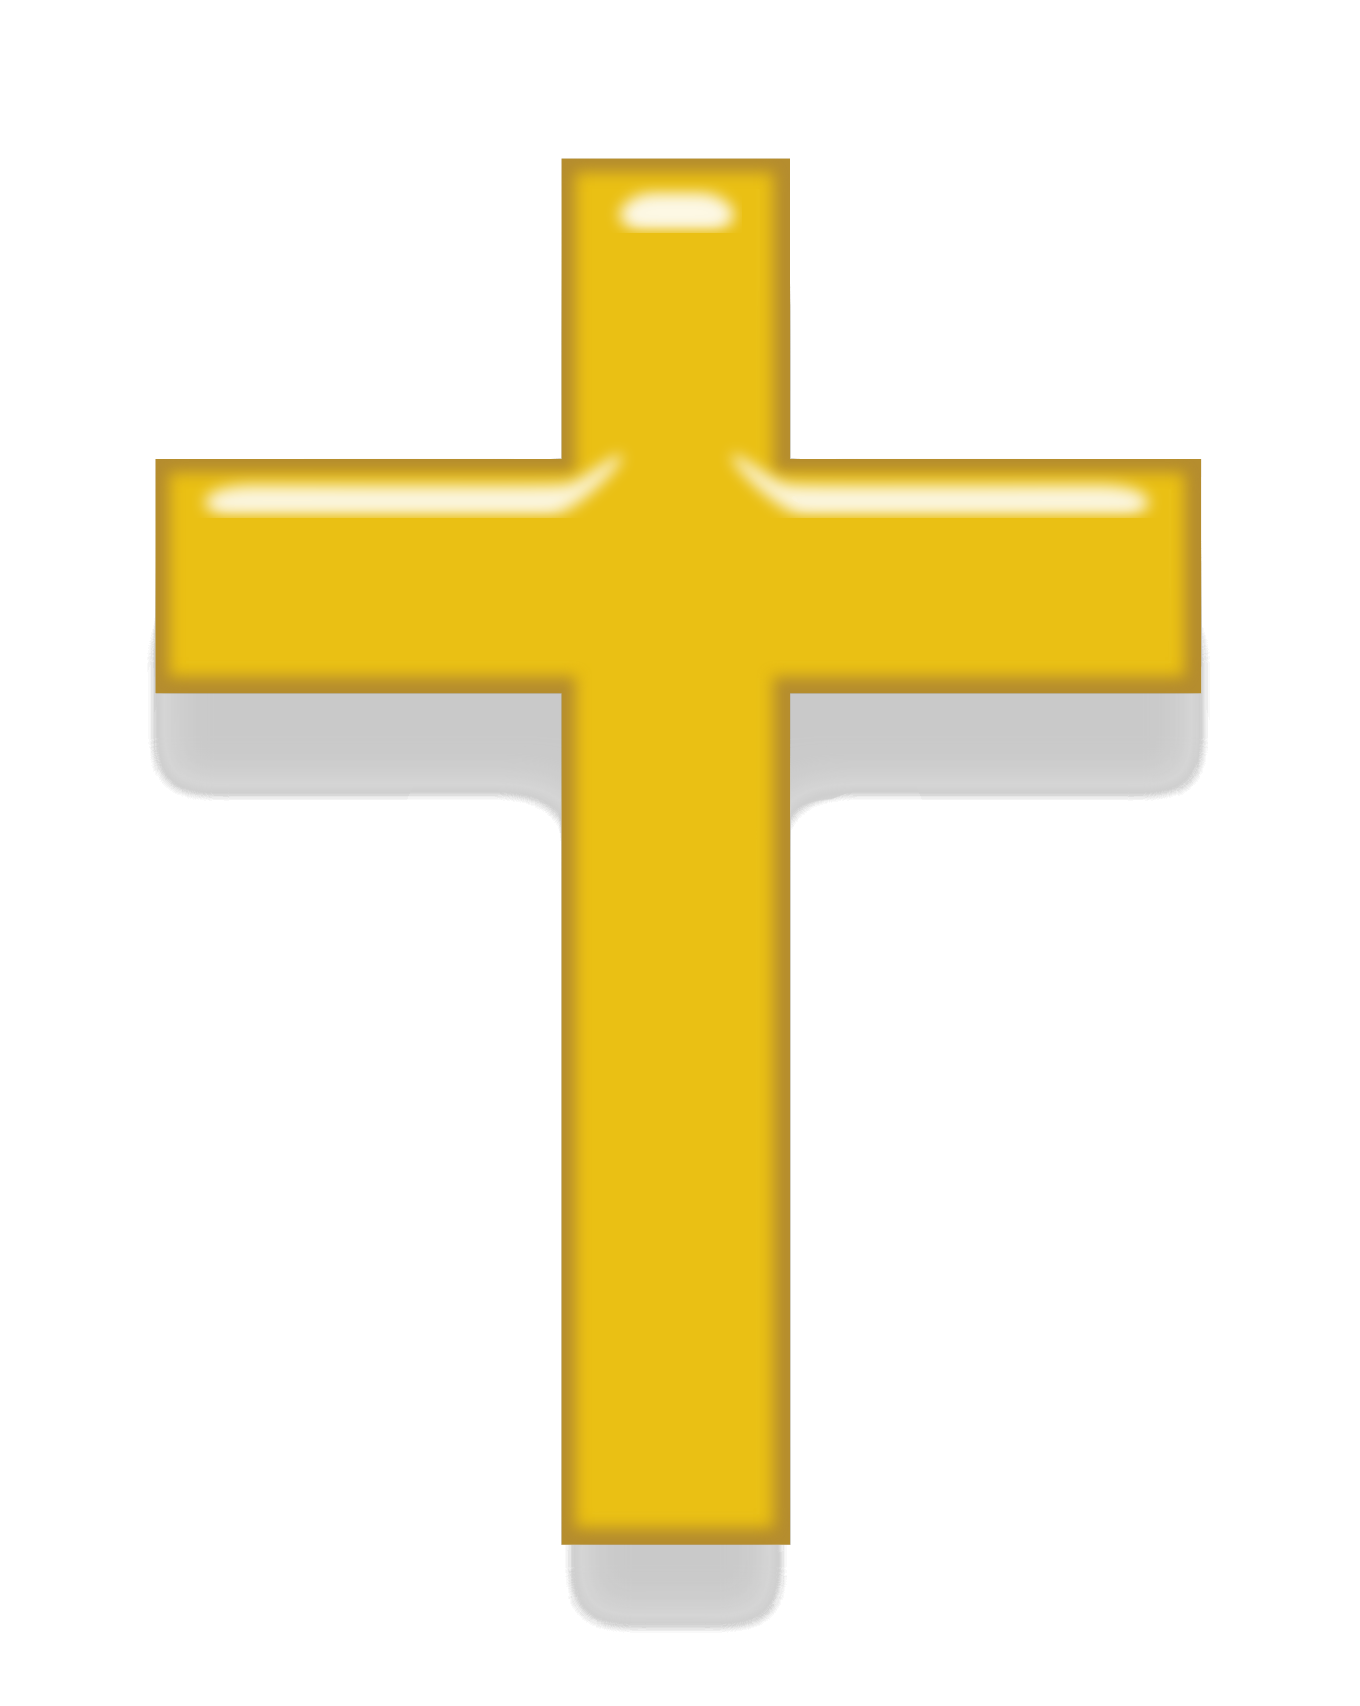 Gold cross png. Free icons and backgrounds